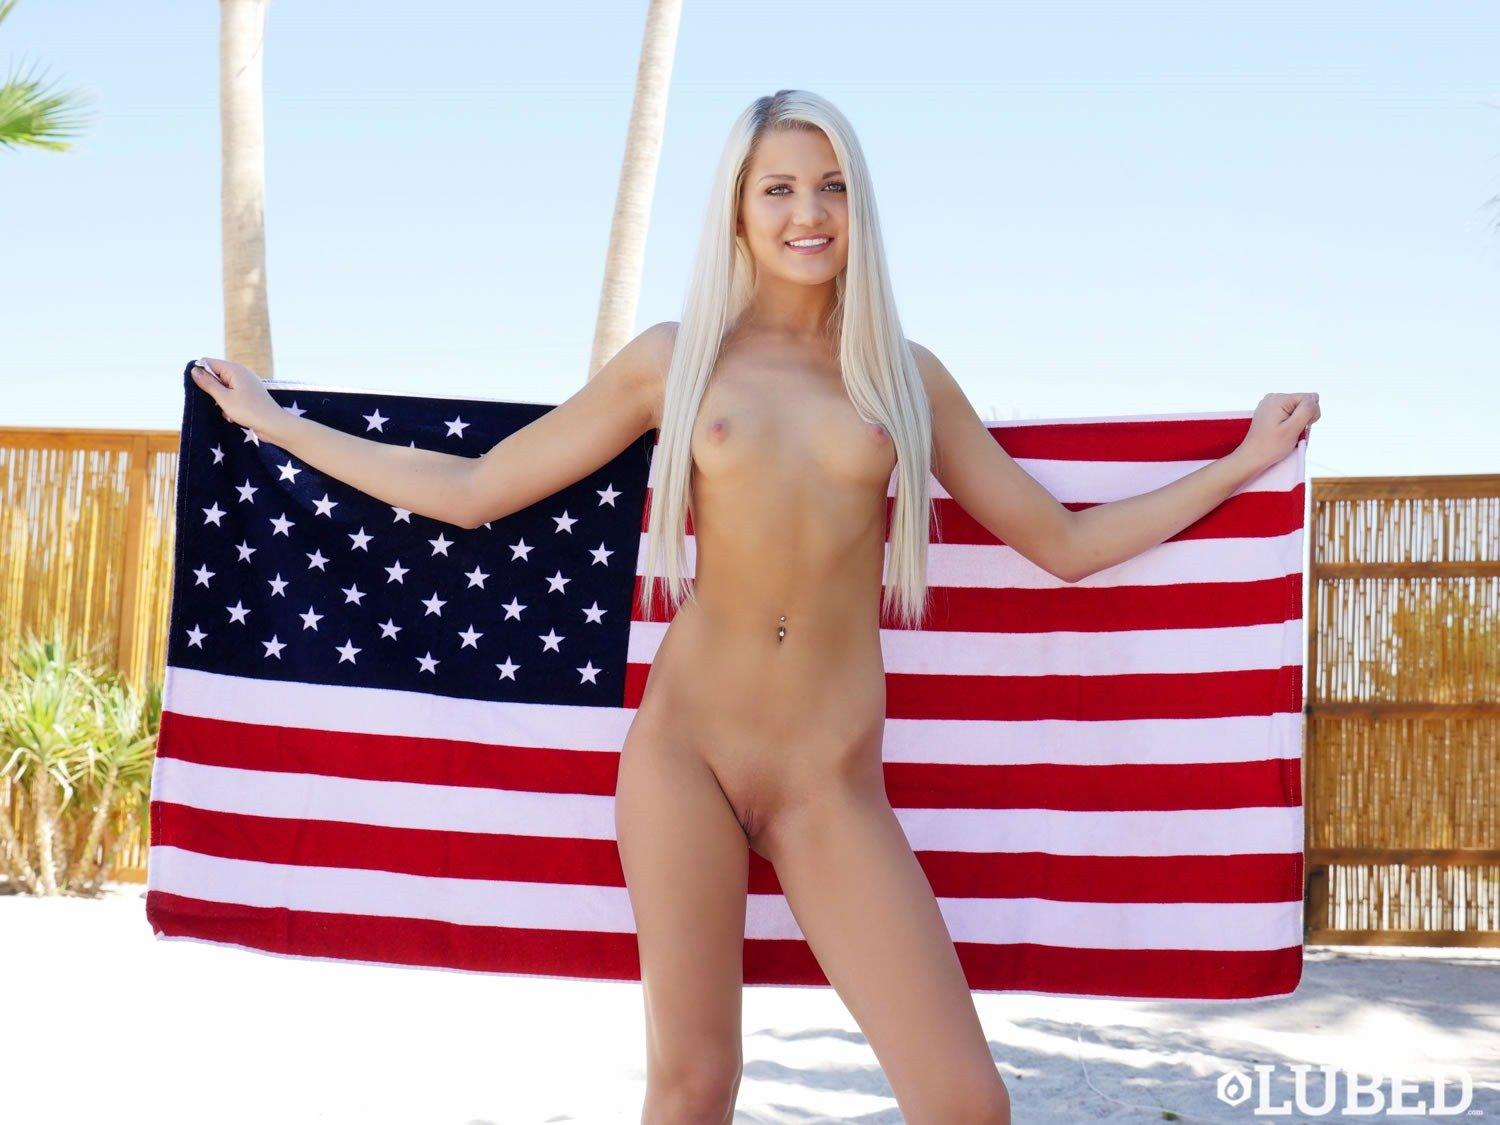 Alexis adams on huge dong 6